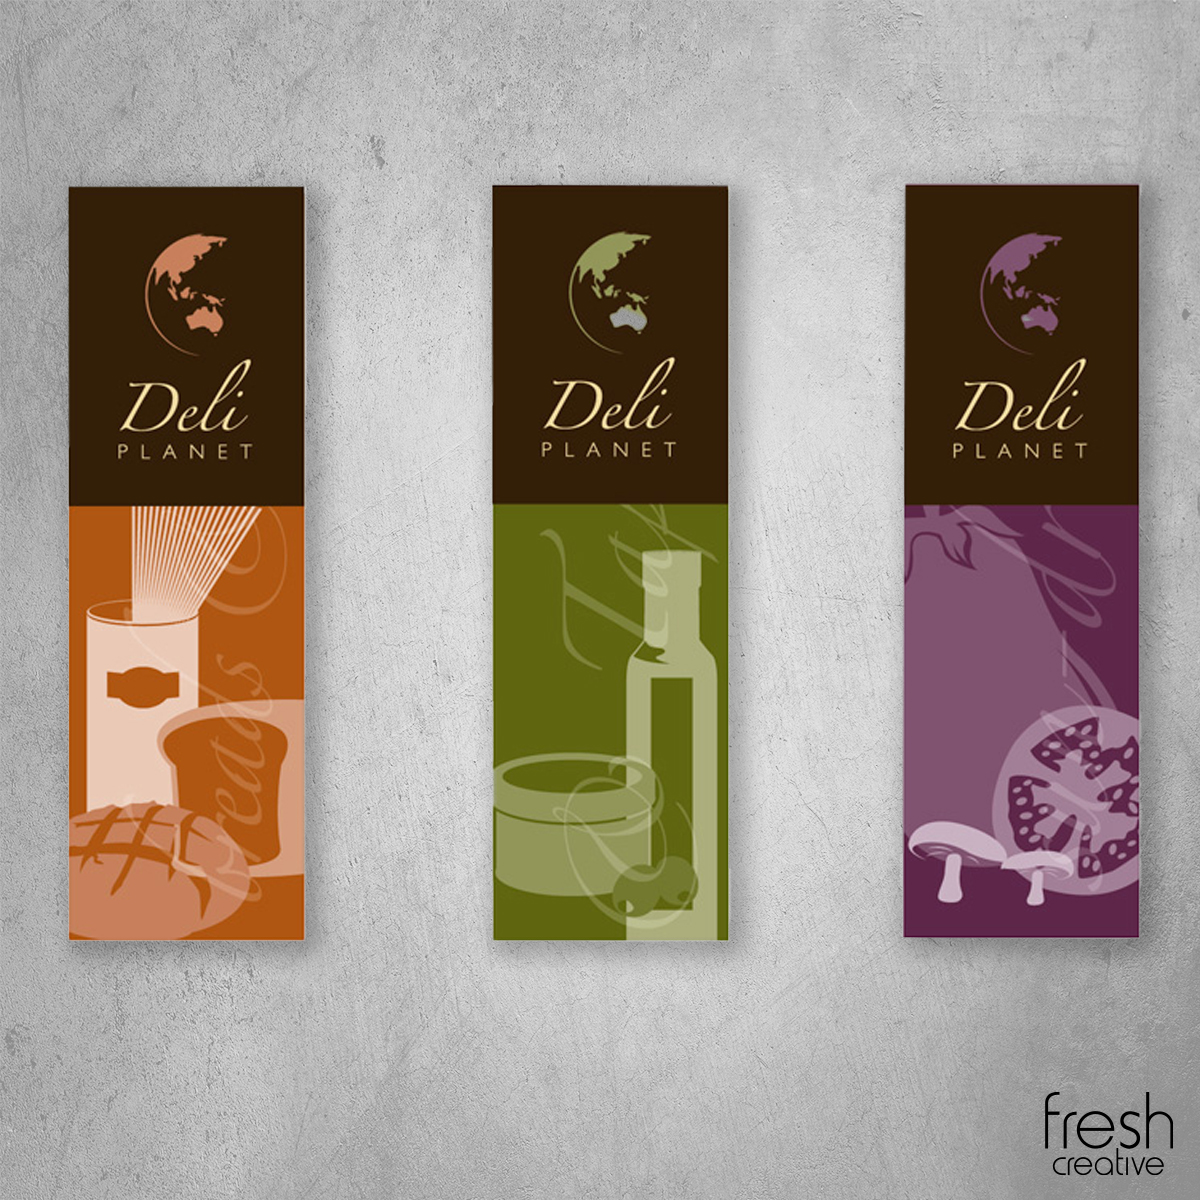 deli planet wall banners